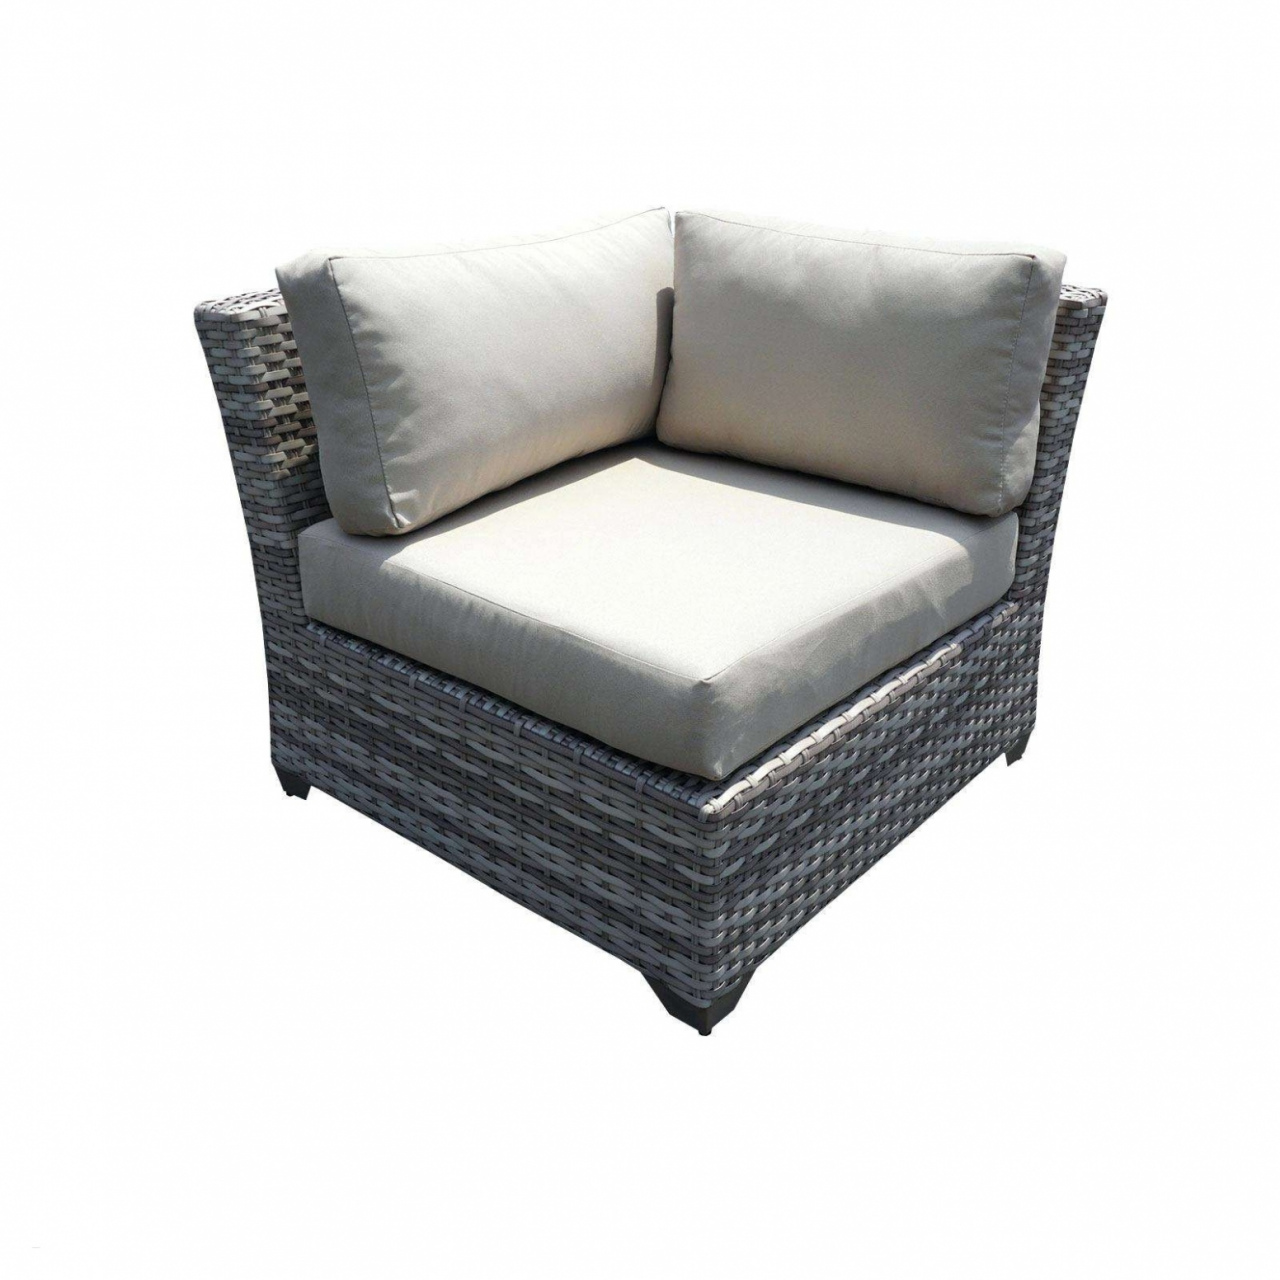 patio daybed couch discount luxus patio furniture daybed patio daybed 0d kimya durch patio daybed